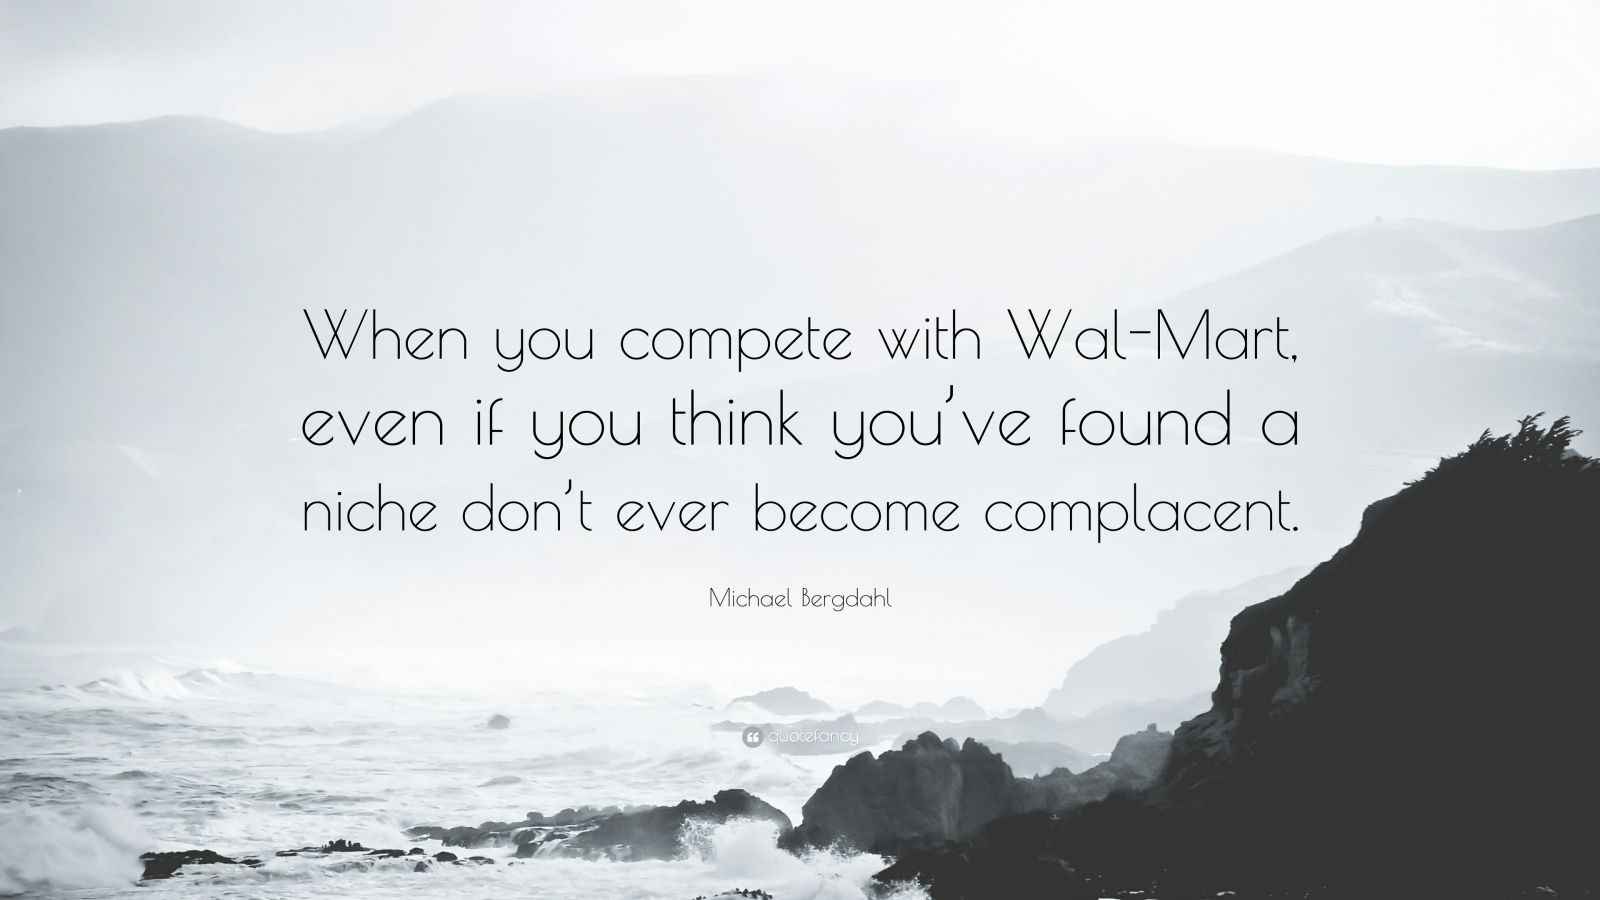 """Michael Bergdahl Quote: """"When you compete with Wal-Mart, even if you think you've found a niche don't ever become complacent."""""""